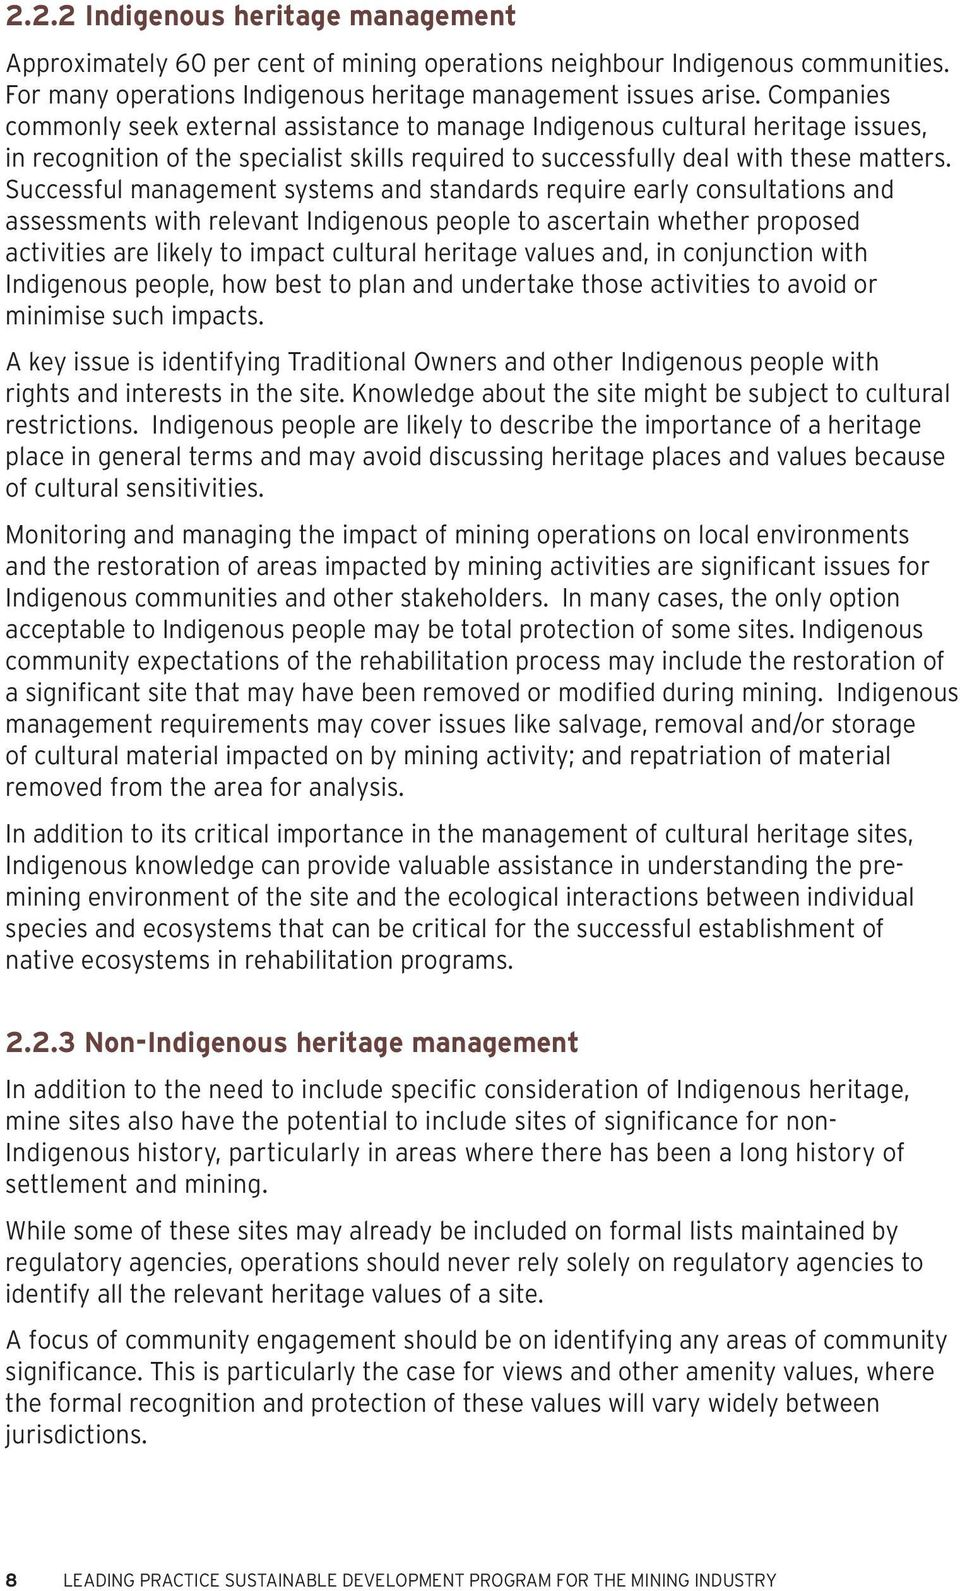 Successful management systems and standards require early consultations and assessments with relevant Indigenous people to ascertain whether proposed activities are likely to impact cultural heritage